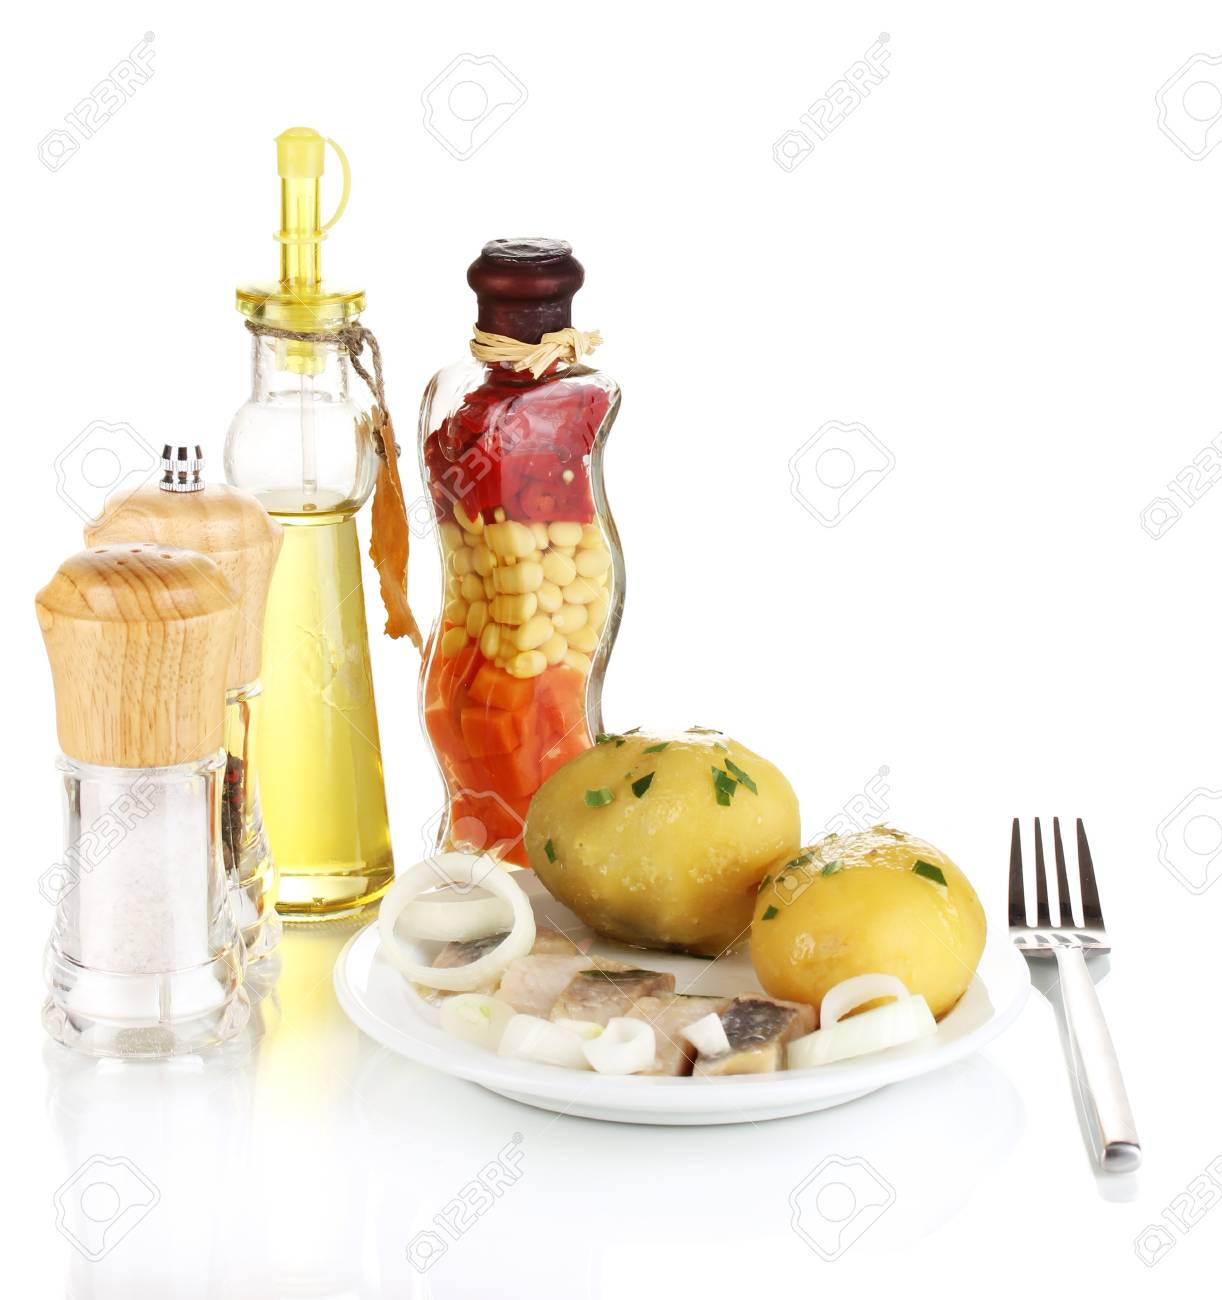 Dish of herring and potatoes on plate isolated on white Stock Photo - 17110358